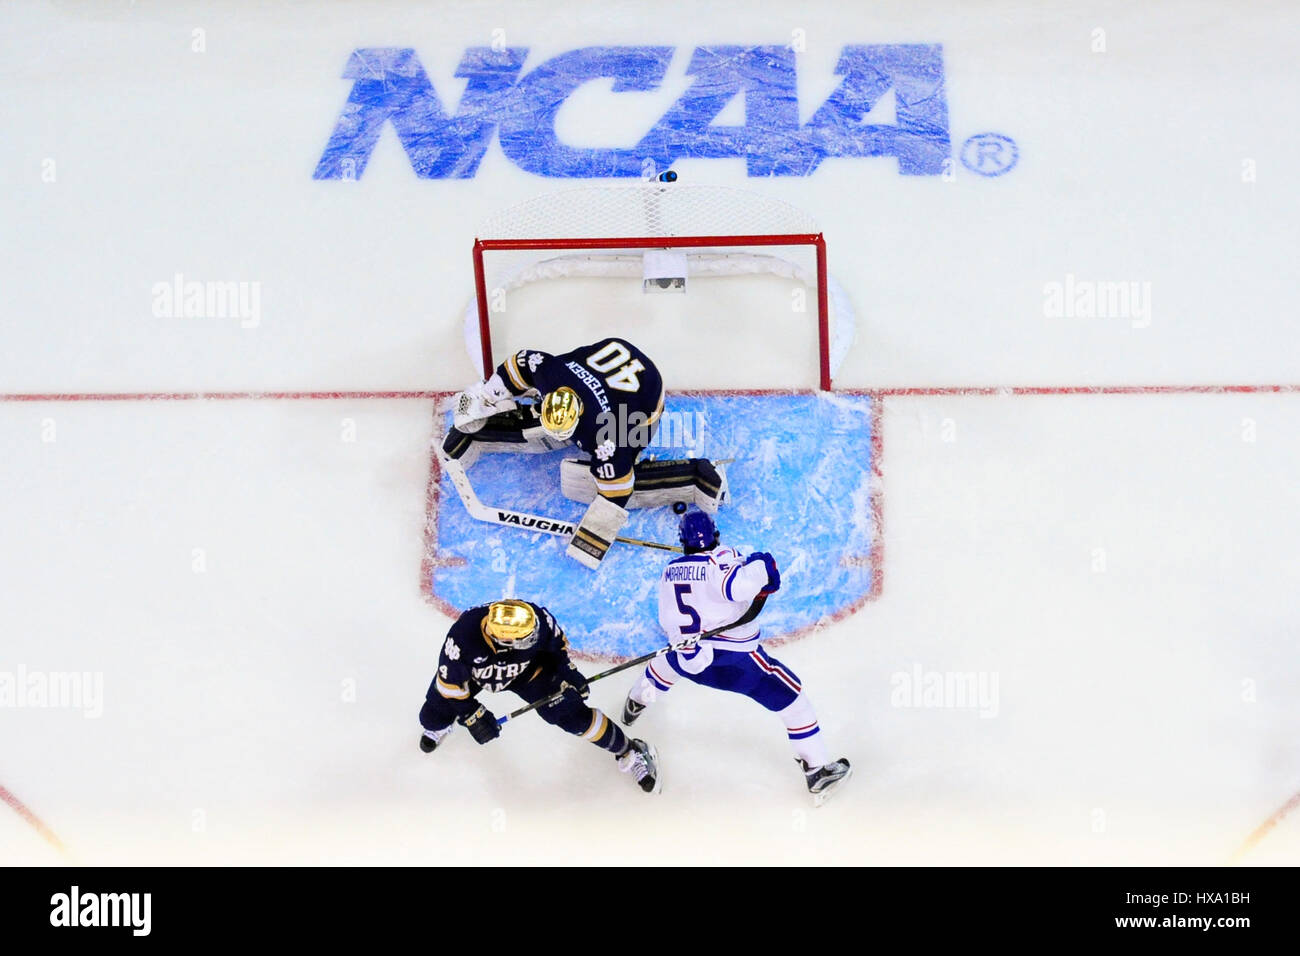 Sunday, March 26, 2017: Notre Dame Fighting Irish goalie Cal Petersen (40) stops a shot by Massachusetts-Lowell - Stock Image